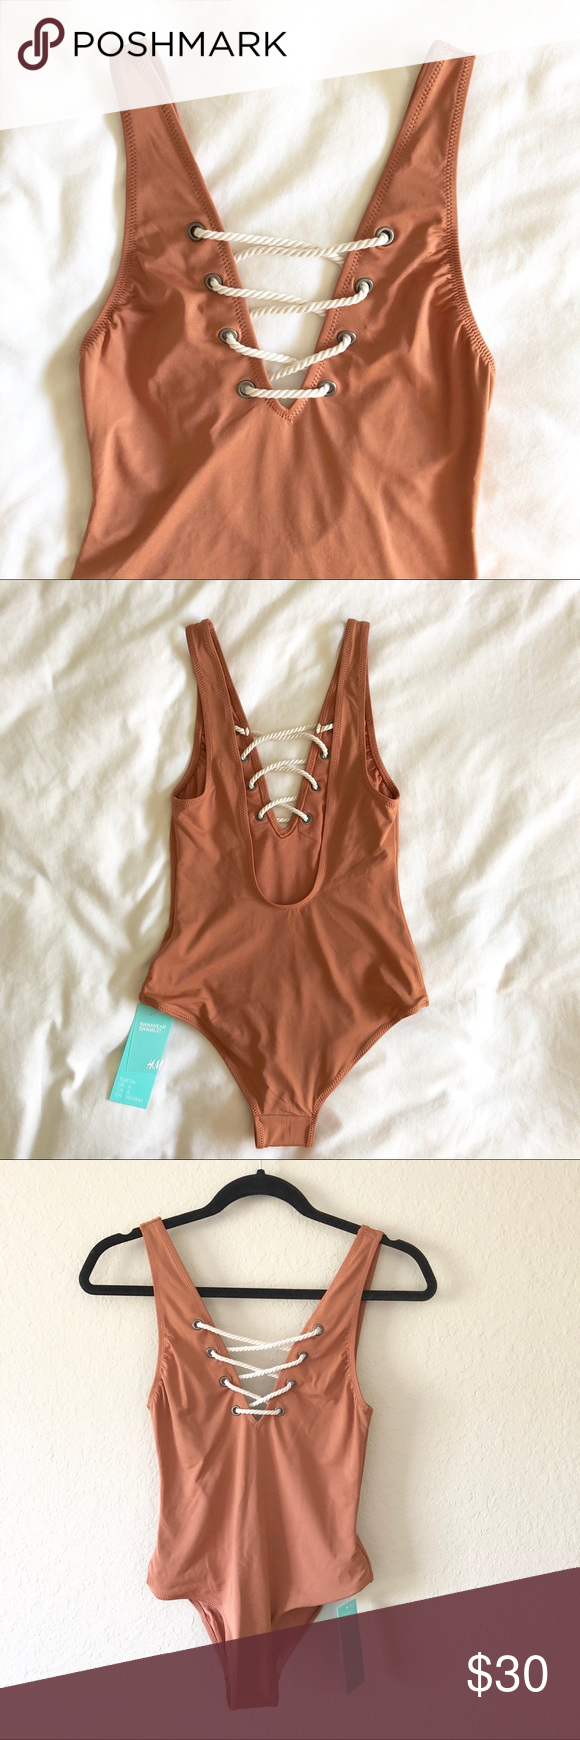 One-Piece Bikini Peachy/nude lace up one piece with low back from H&M. Size 6. Brand new. H&M Swim One Pieces